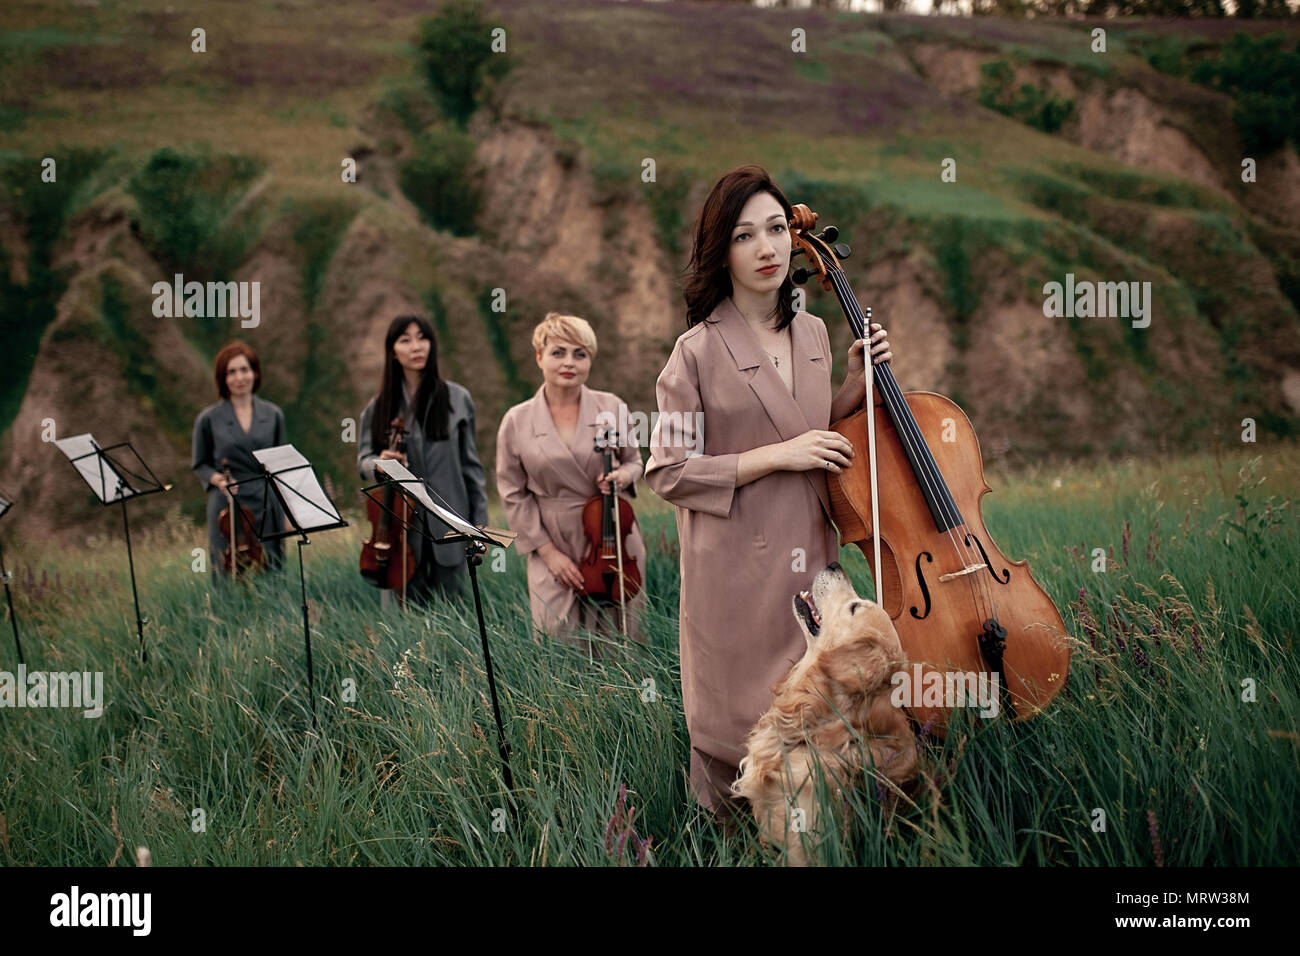 Female musical quartet with three violins and one cello prepares to play at flowering meadow against backdrop of picturesque landscape next to dog. - Stock Image